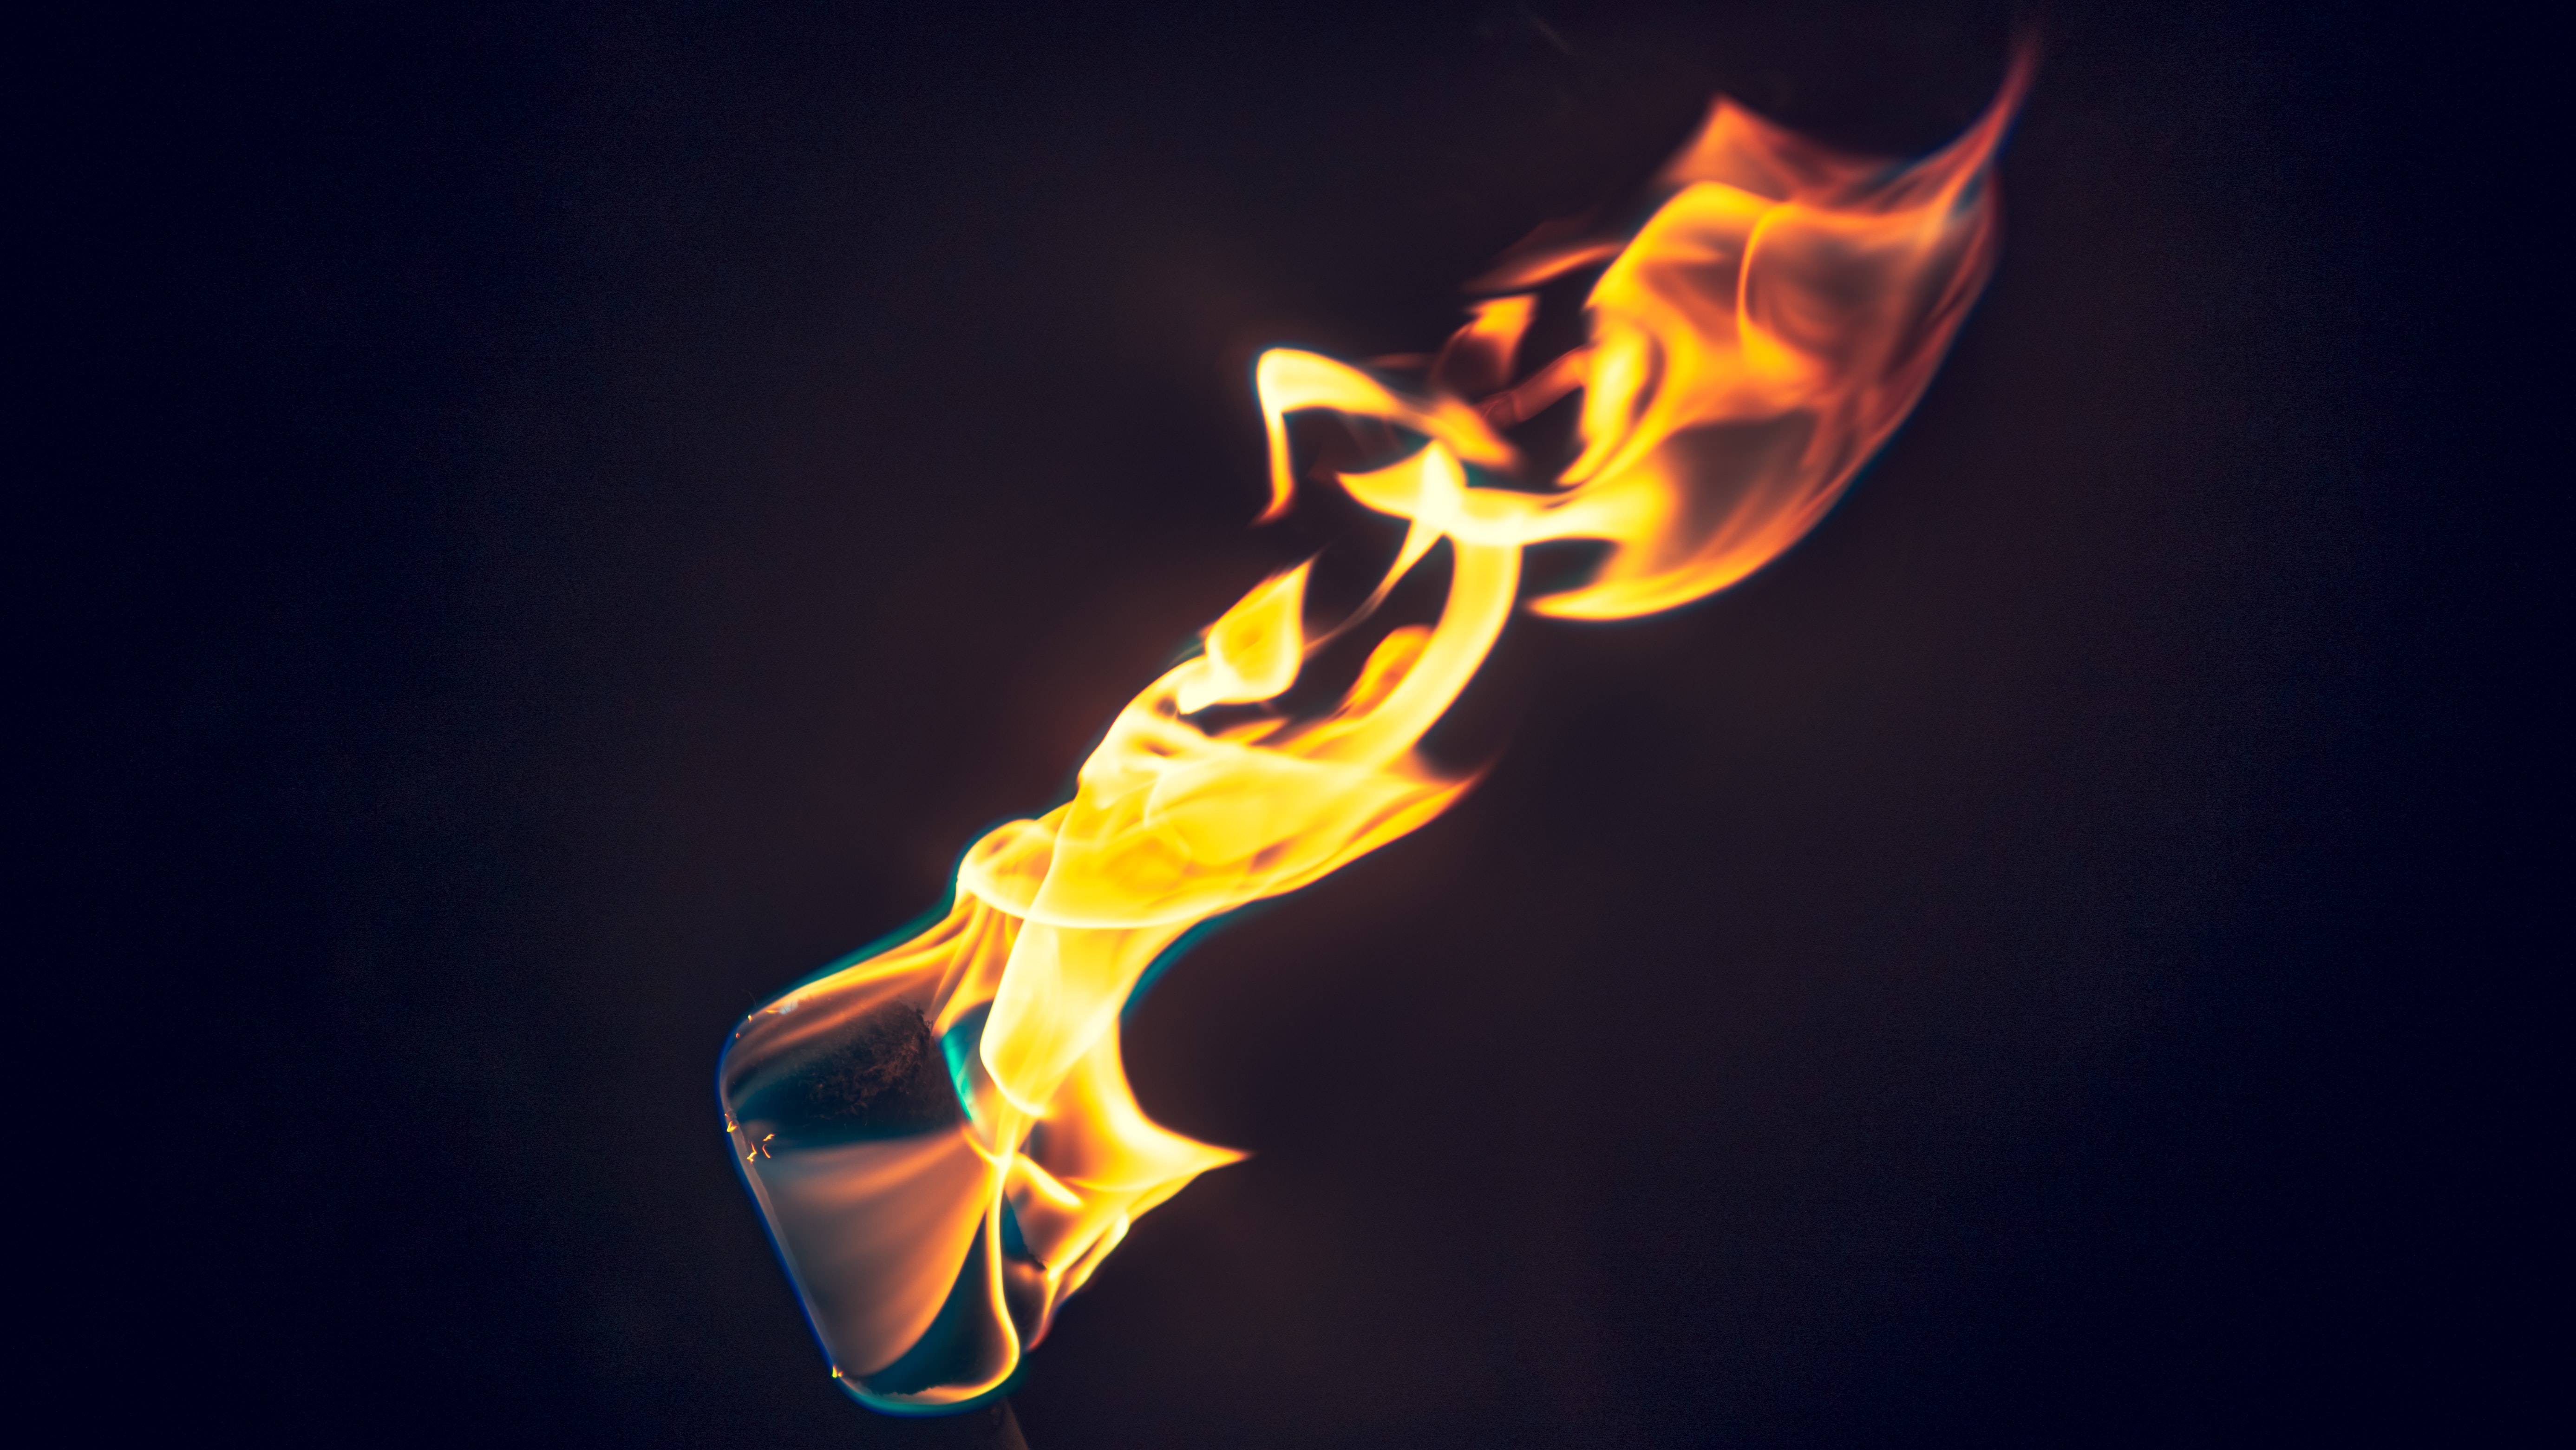 red and yellow flame digital wallpaper